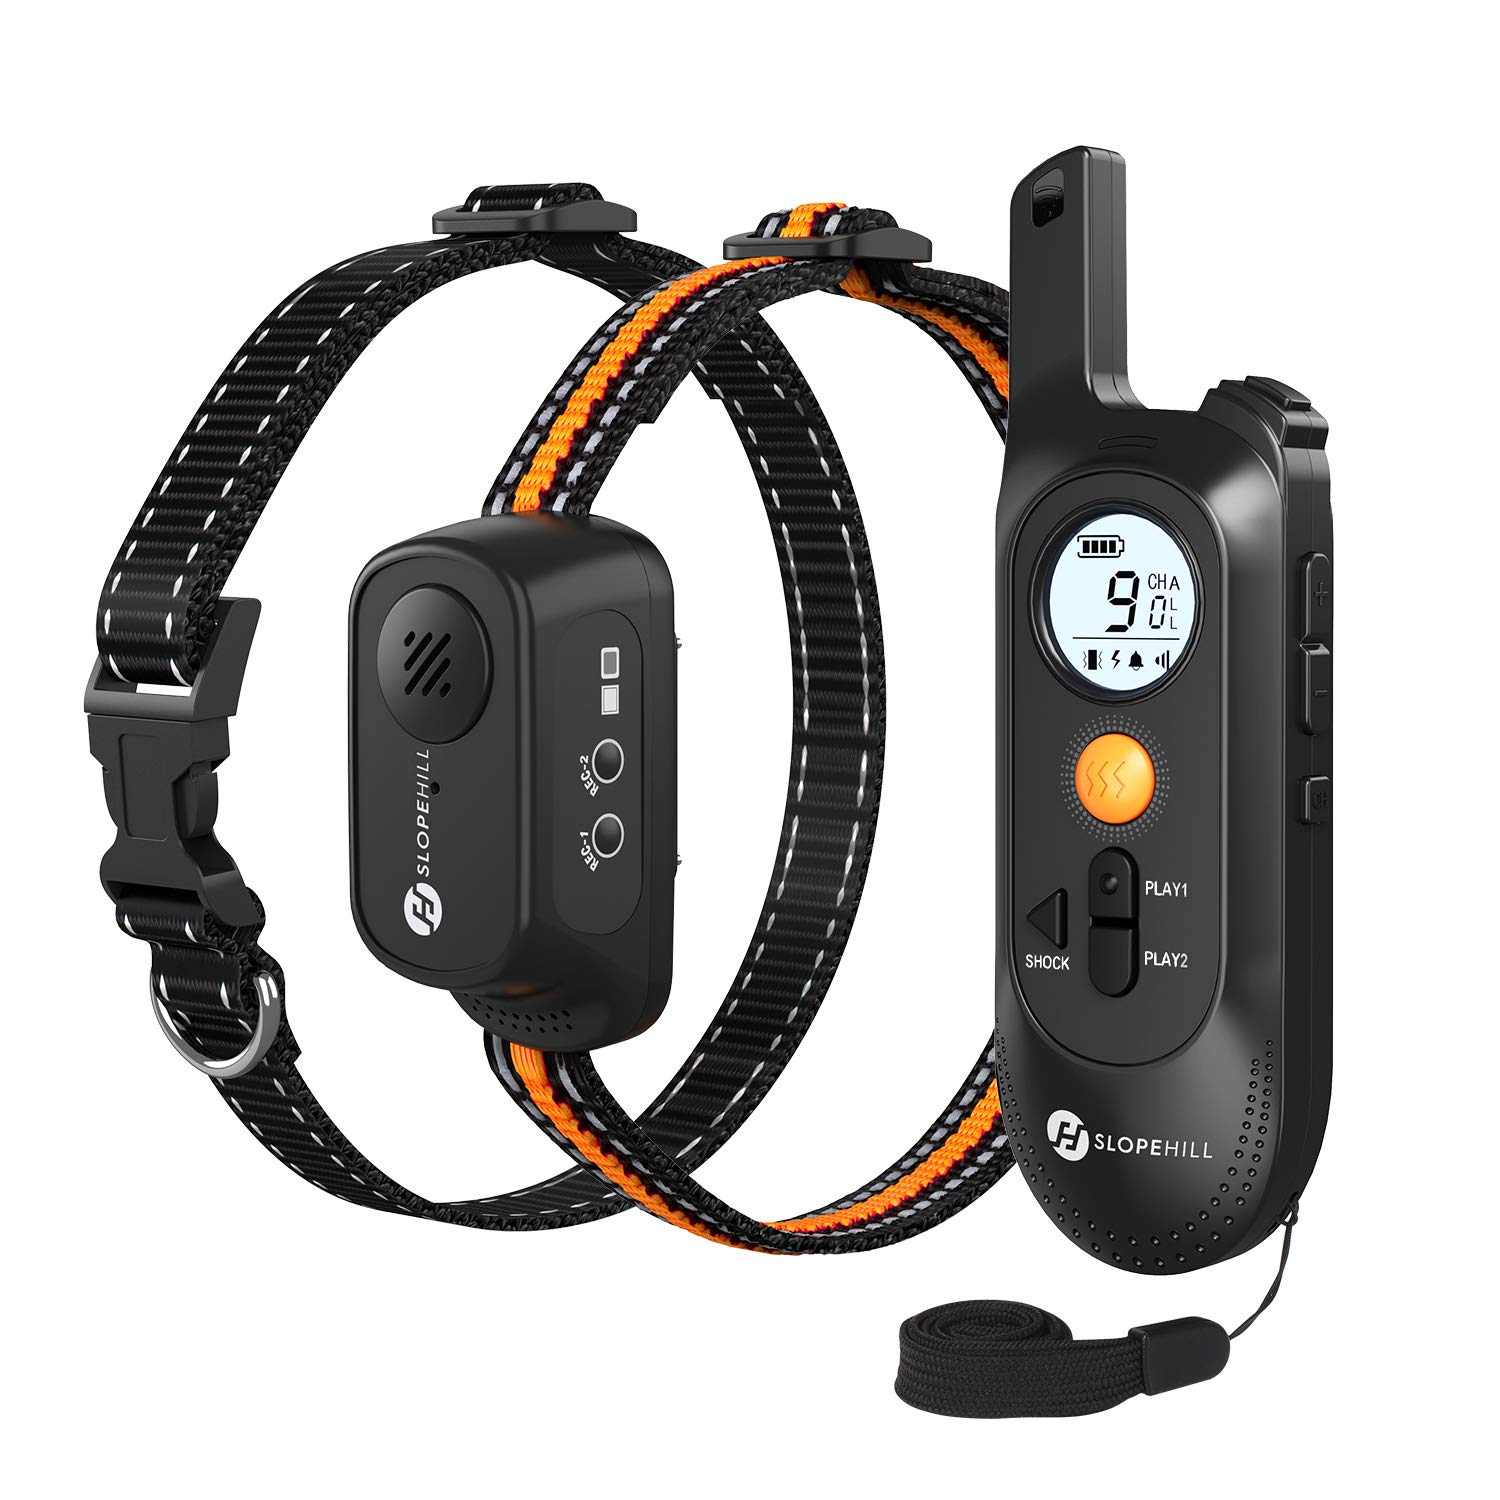 Slopehill Shock Collars for Dogs with Remote, Dog Training Collar with Voice Commands, Beep, Vibration Modes, Rechargeable Rainproof Adjustable Electric Dog Bark Collar for Large Medium Small Dogs